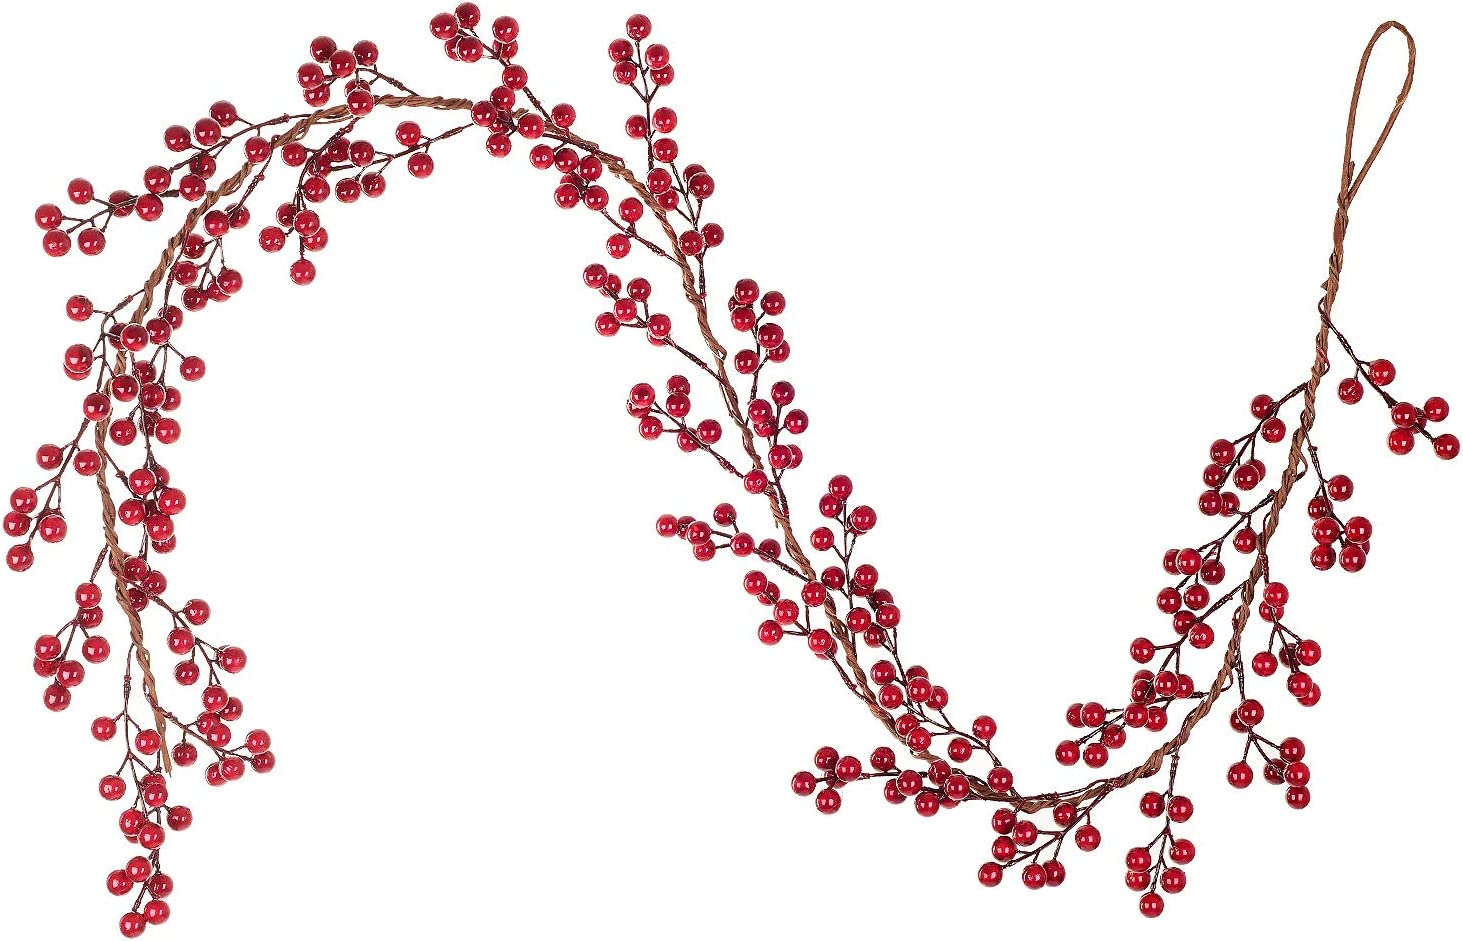 Amazon Com Artiflr 6ft Red Berry Garland Flexible Artificial Red And Burgundy Berry Christmas Garland For Indoor Outdoor Home Fireplace Decoration For Winter Holiday New Year Decor Home Kitchen